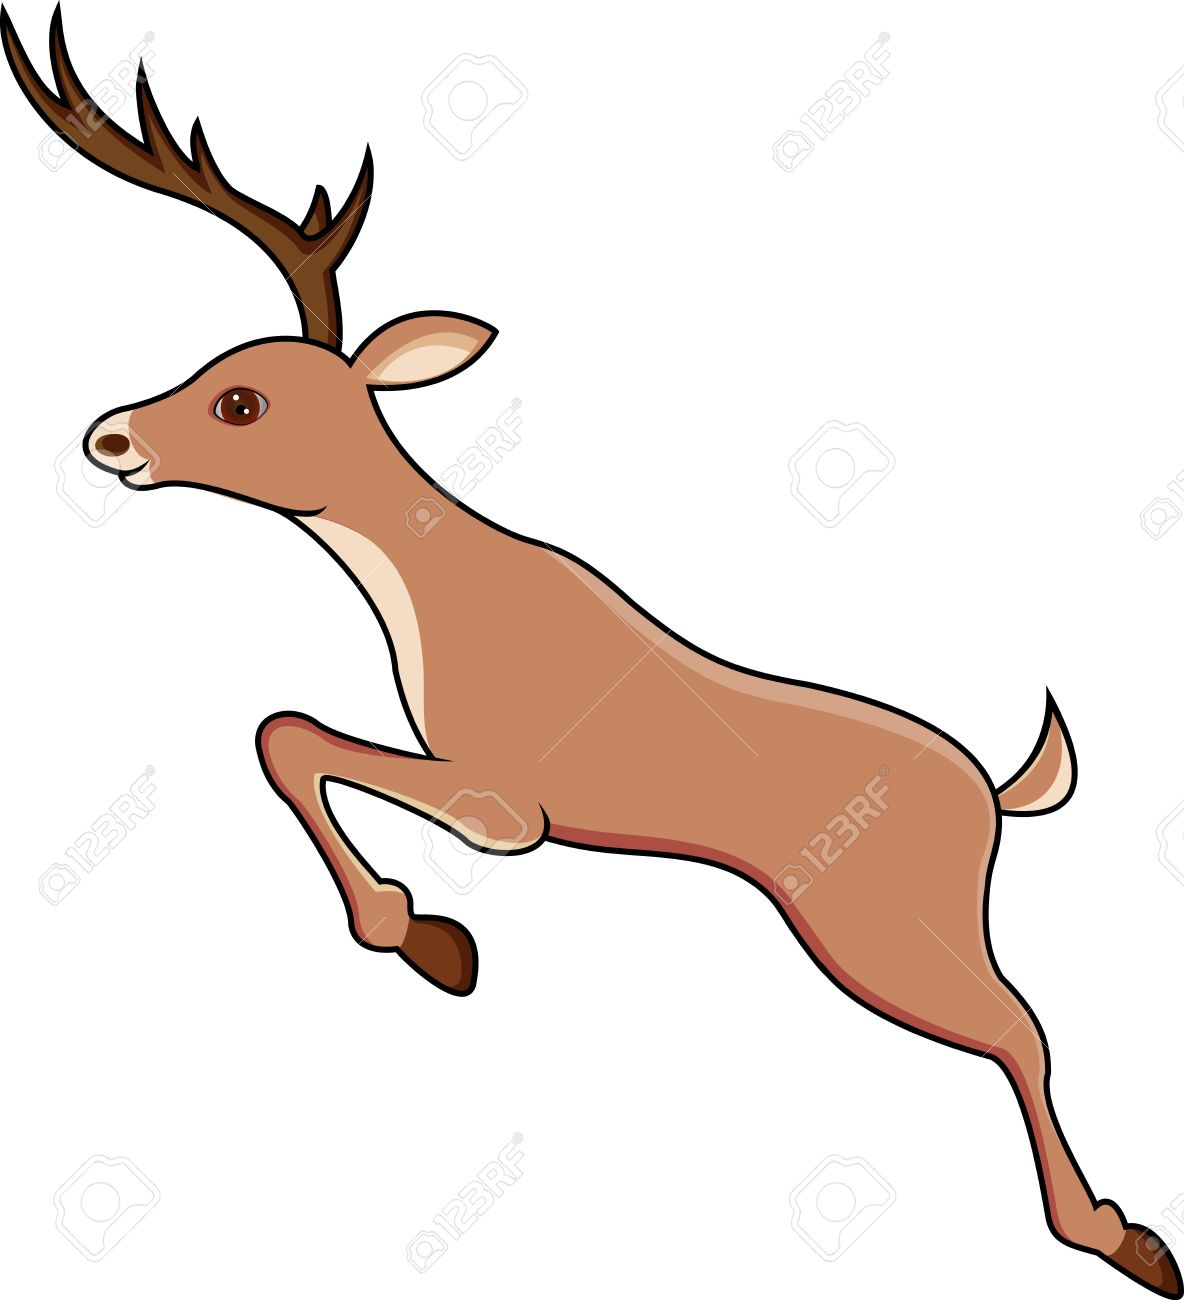 1184x1300 Pronghorn Antelope Clipart Antelope Head